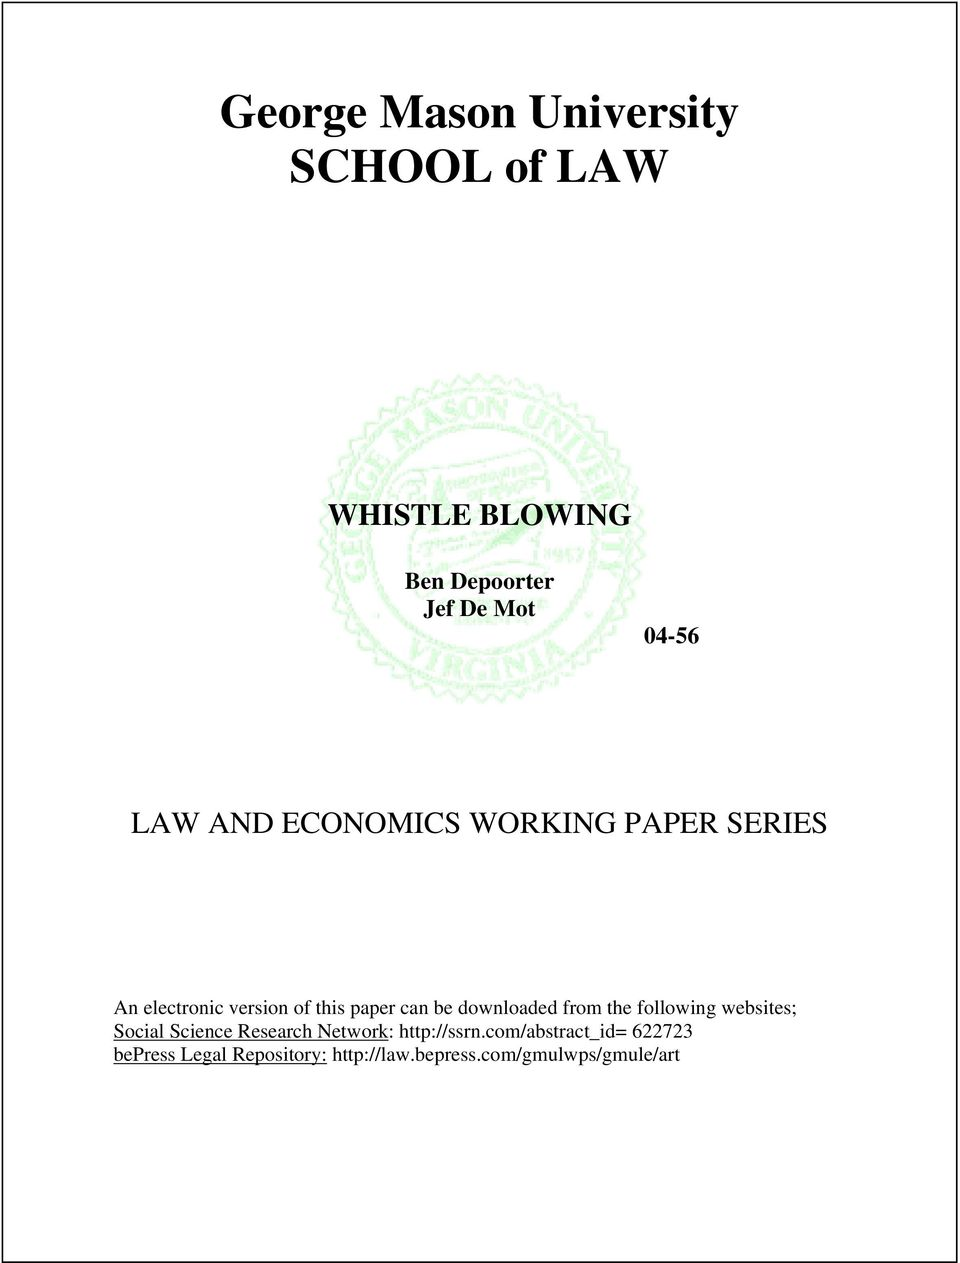 george mason university law and economics research paper series Research paper series ls 15-17 this paper is available on the social science research network george mason university law and economics research paper series.